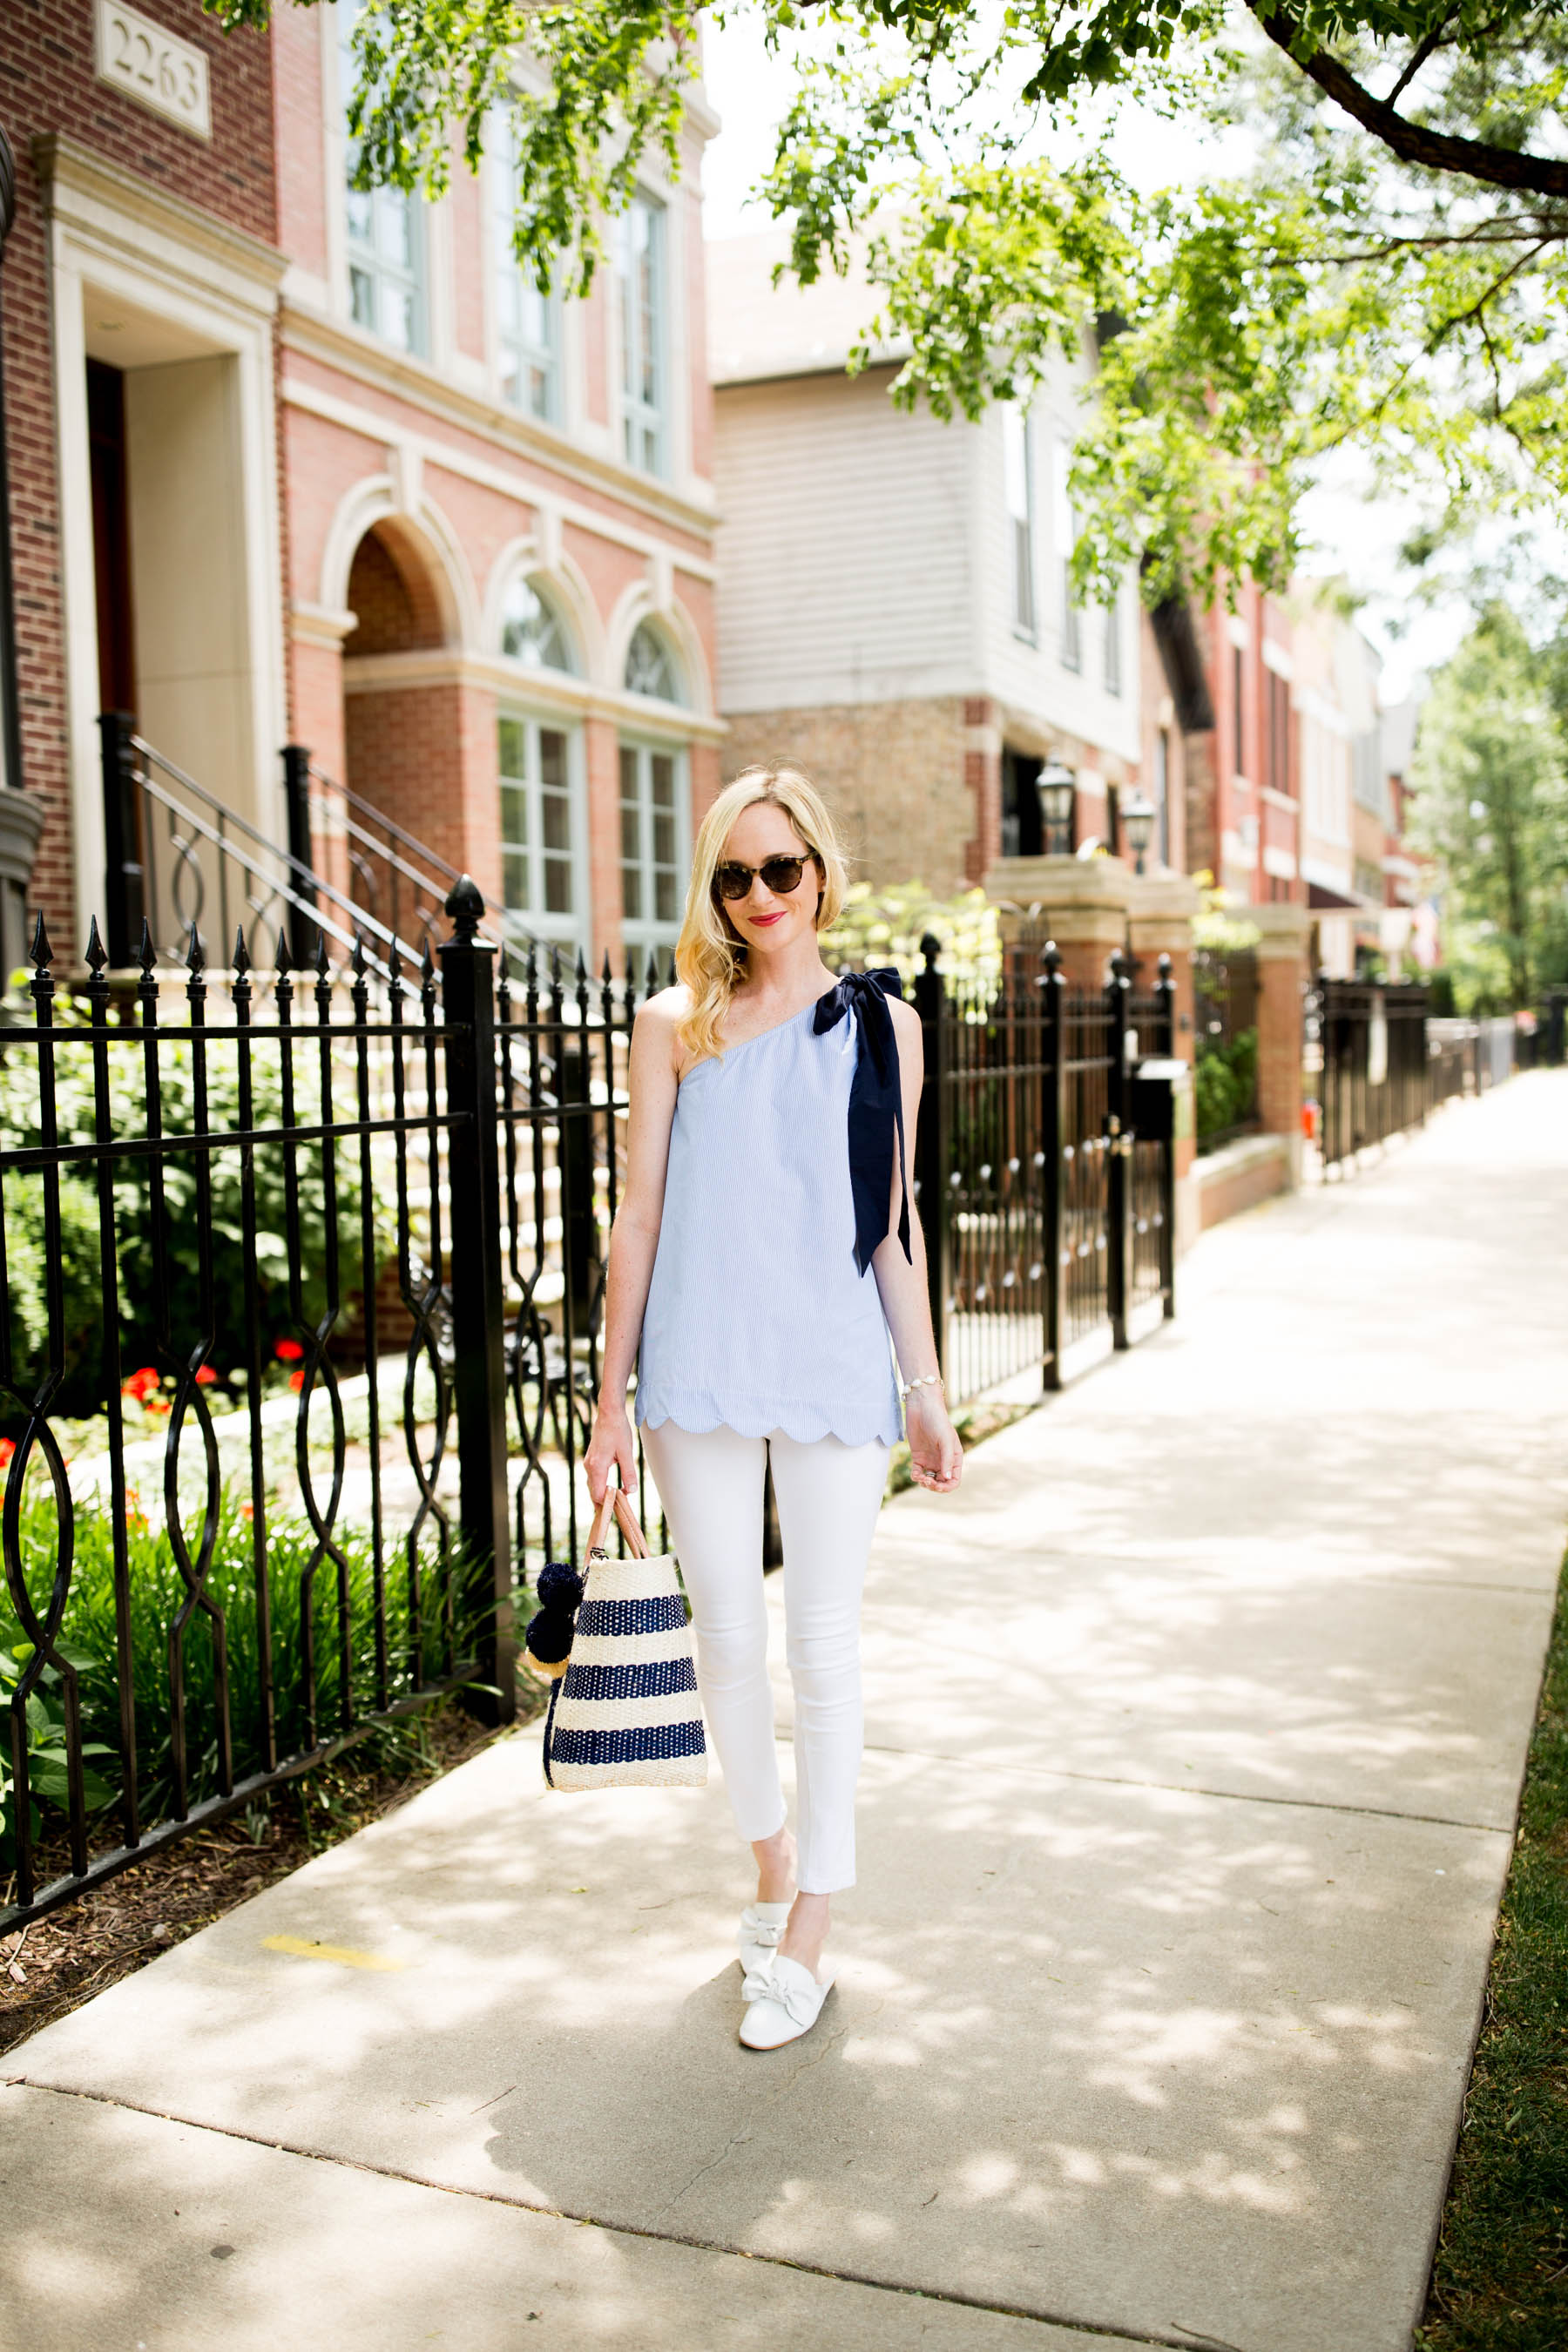 Scalloped Bow Top by Kelly Larkin | Kelly in the City